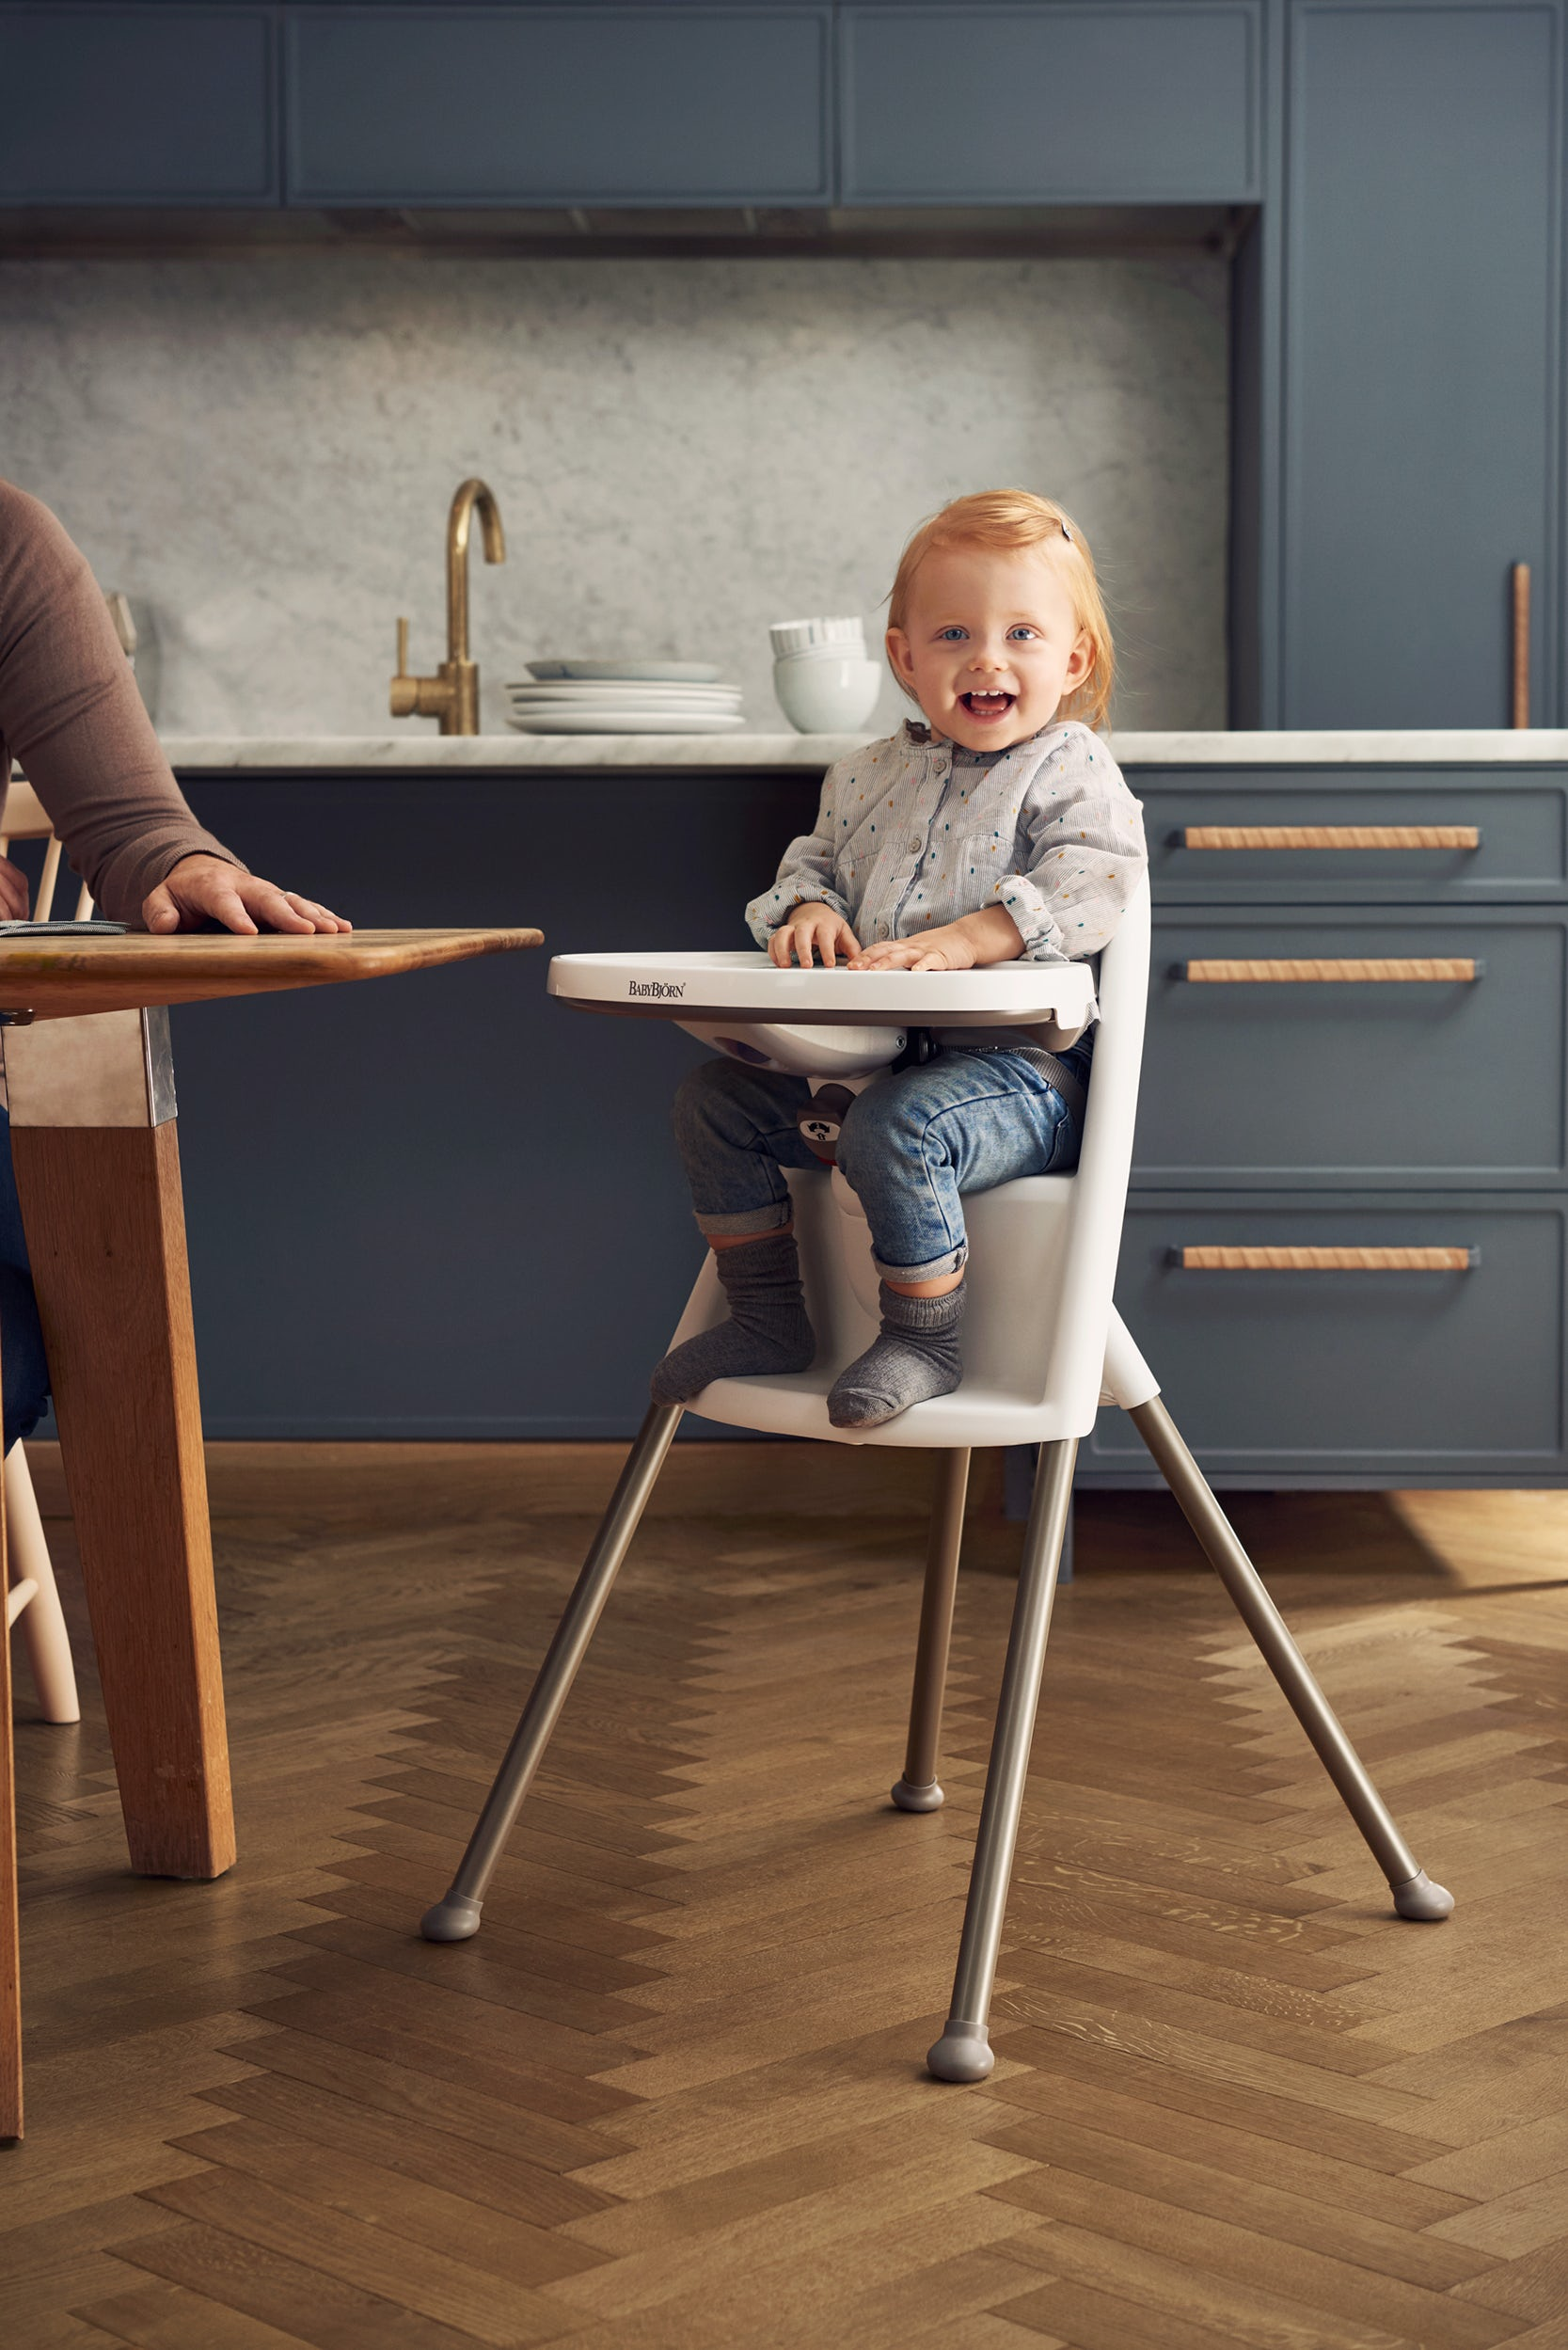 Admirable Infant High Chair Safe Smart Design Babybjorn Caraccident5 Cool Chair Designs And Ideas Caraccident5Info